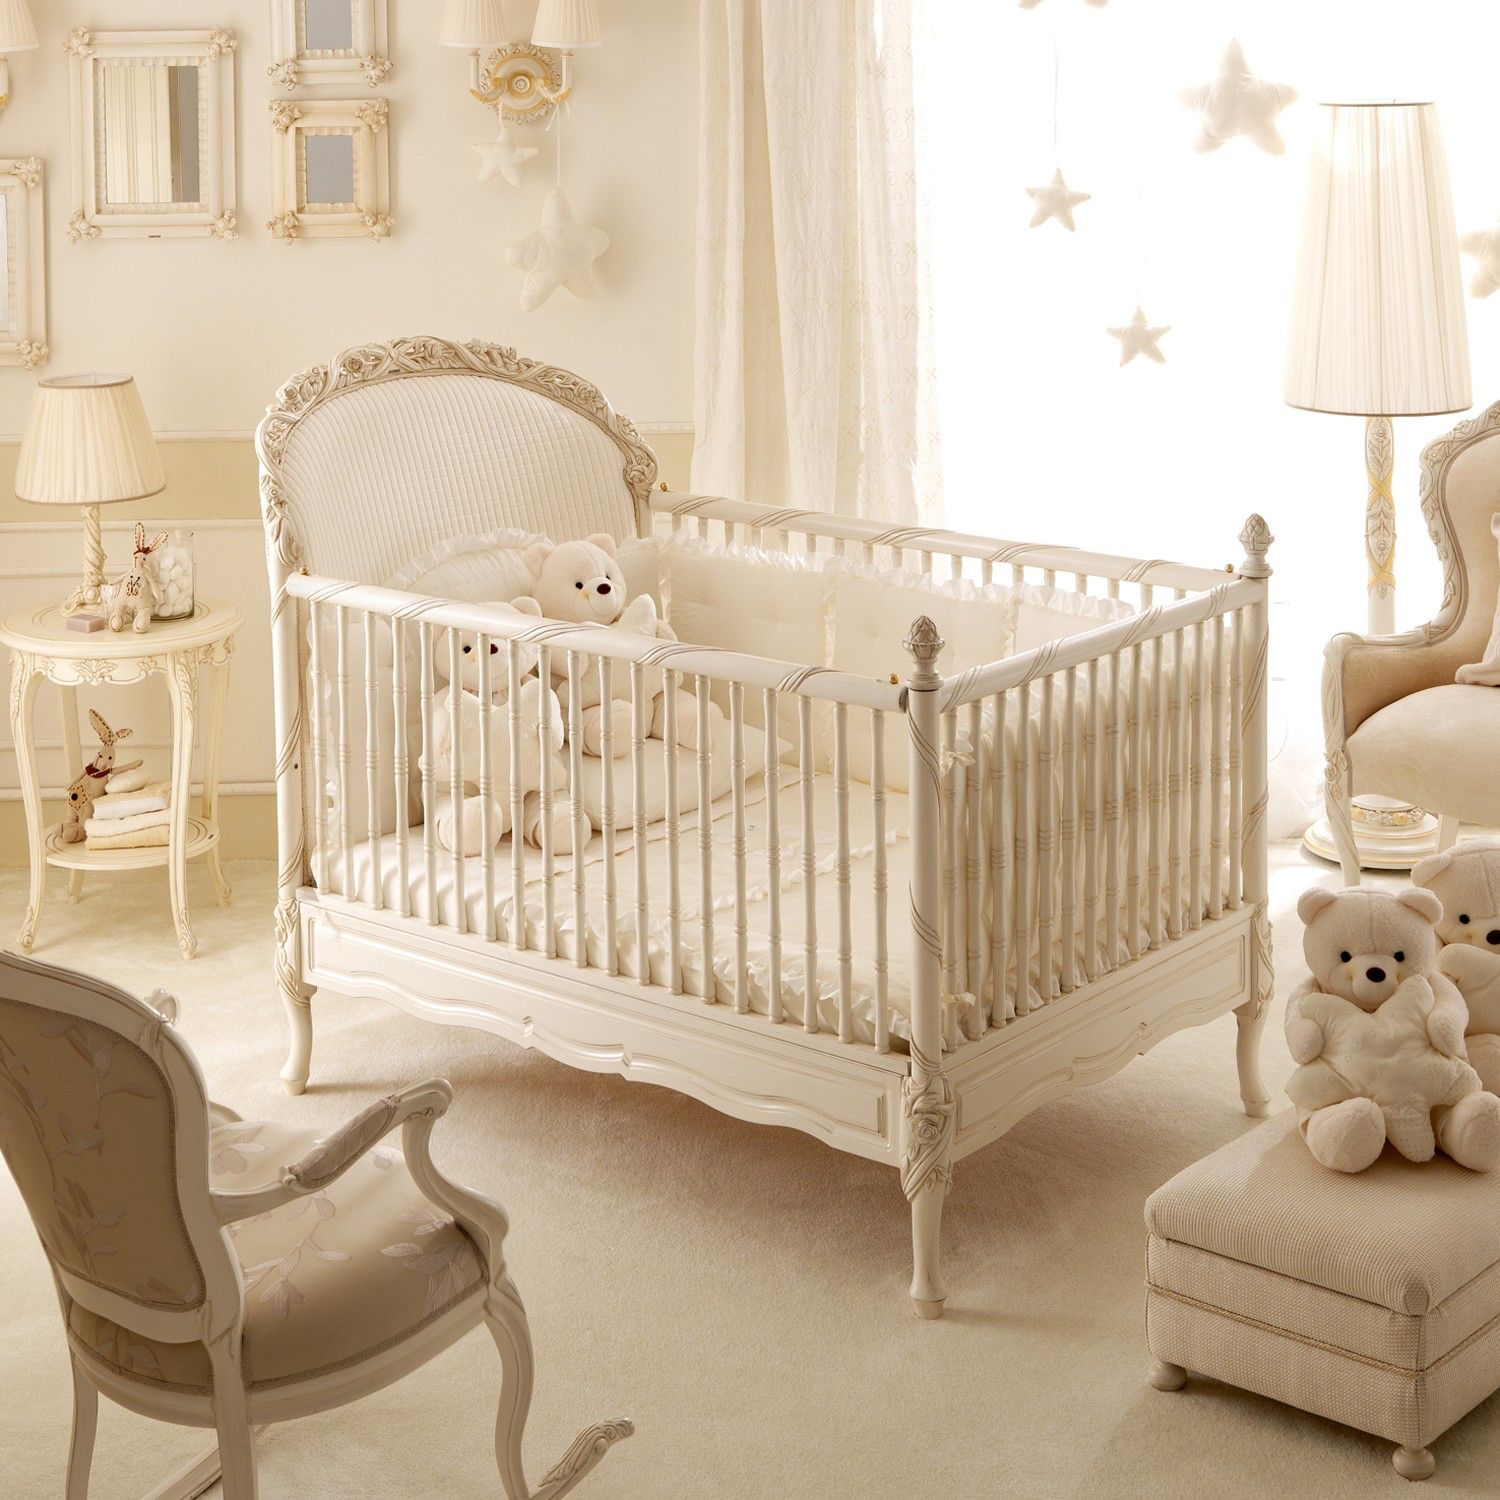 Are Expensive Cribs Worth The Money Luxury Baby Crib Baby Cribs